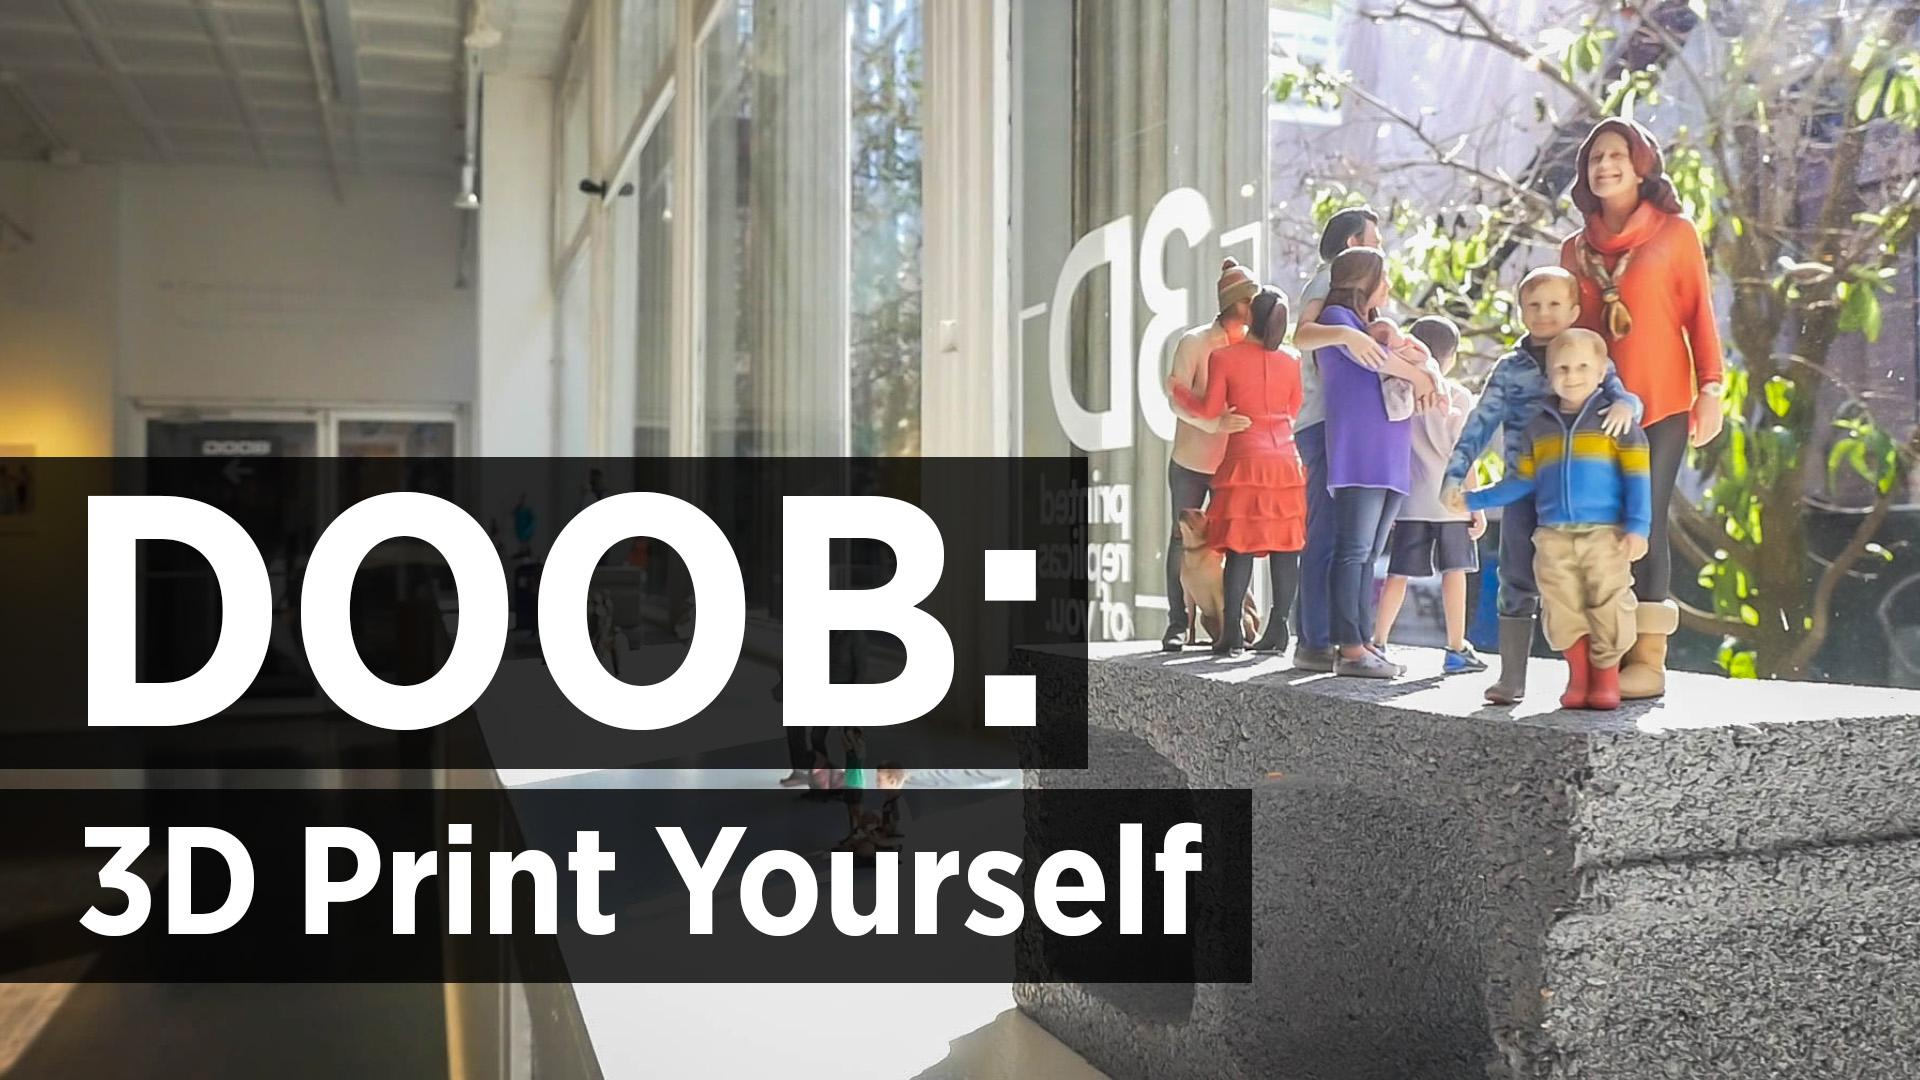 DOOB: 3D Print Yourself